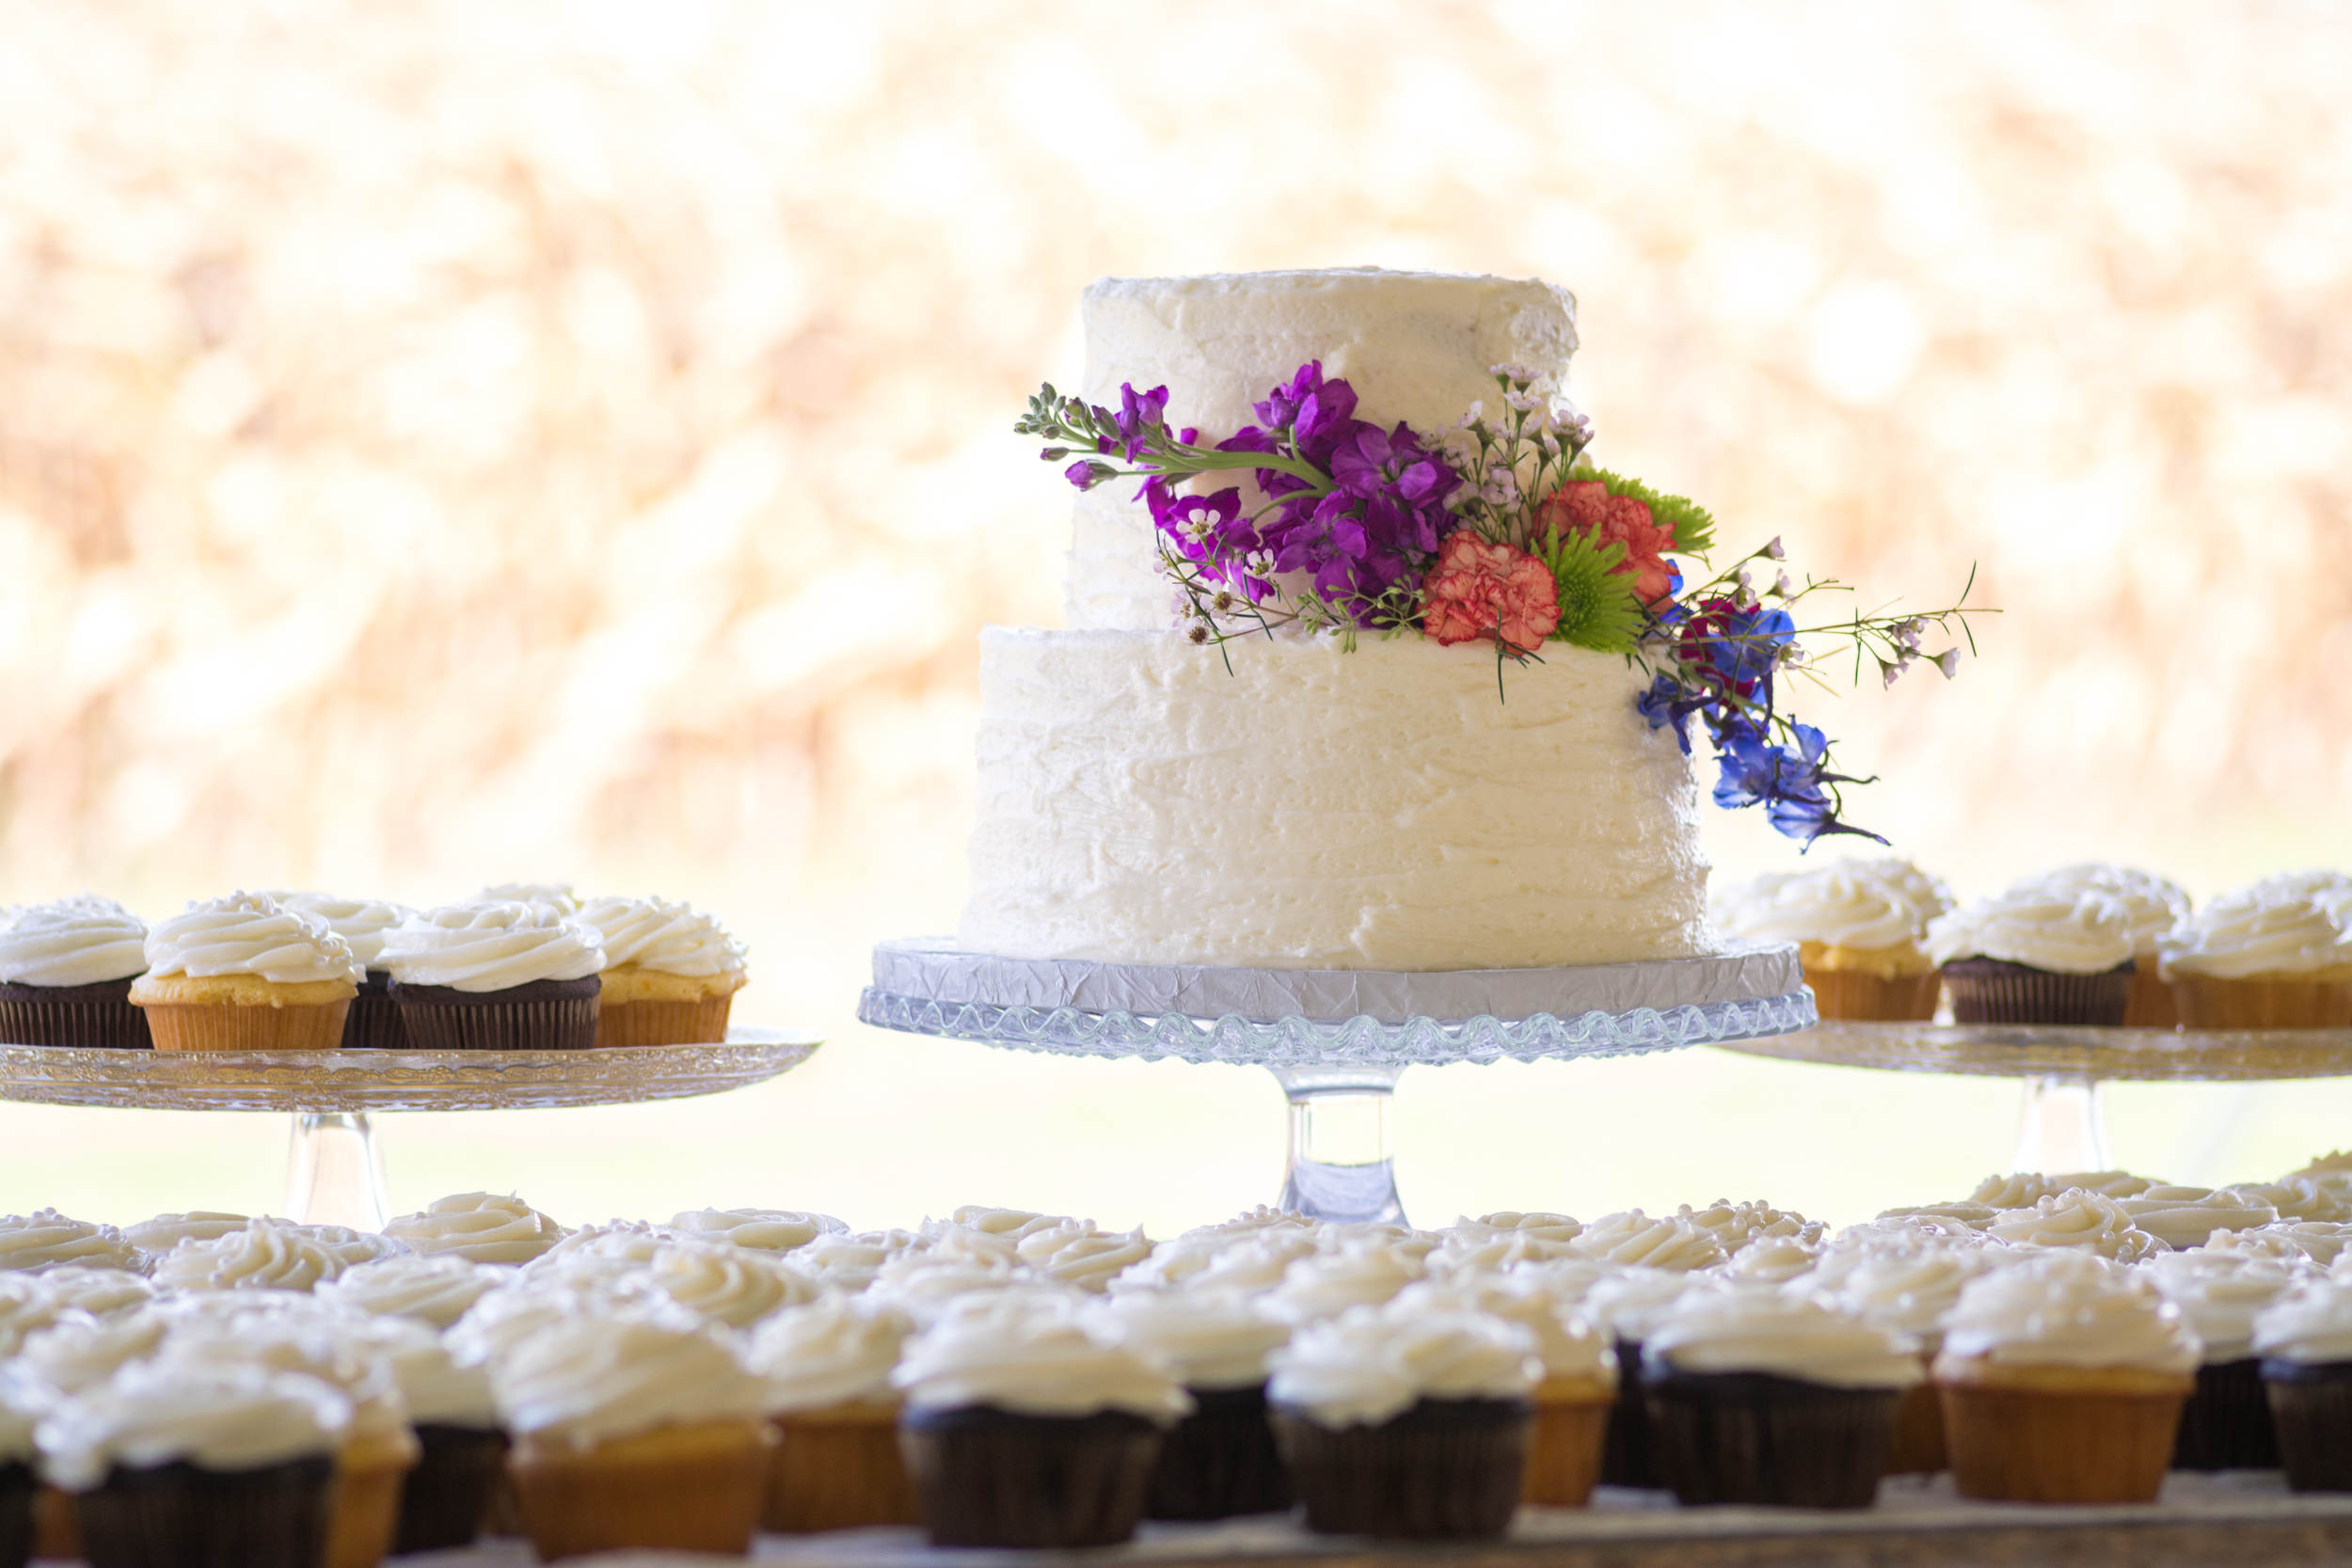 Life_by_pictures_photography dick wedding mount sterling ohio september_6.jpg